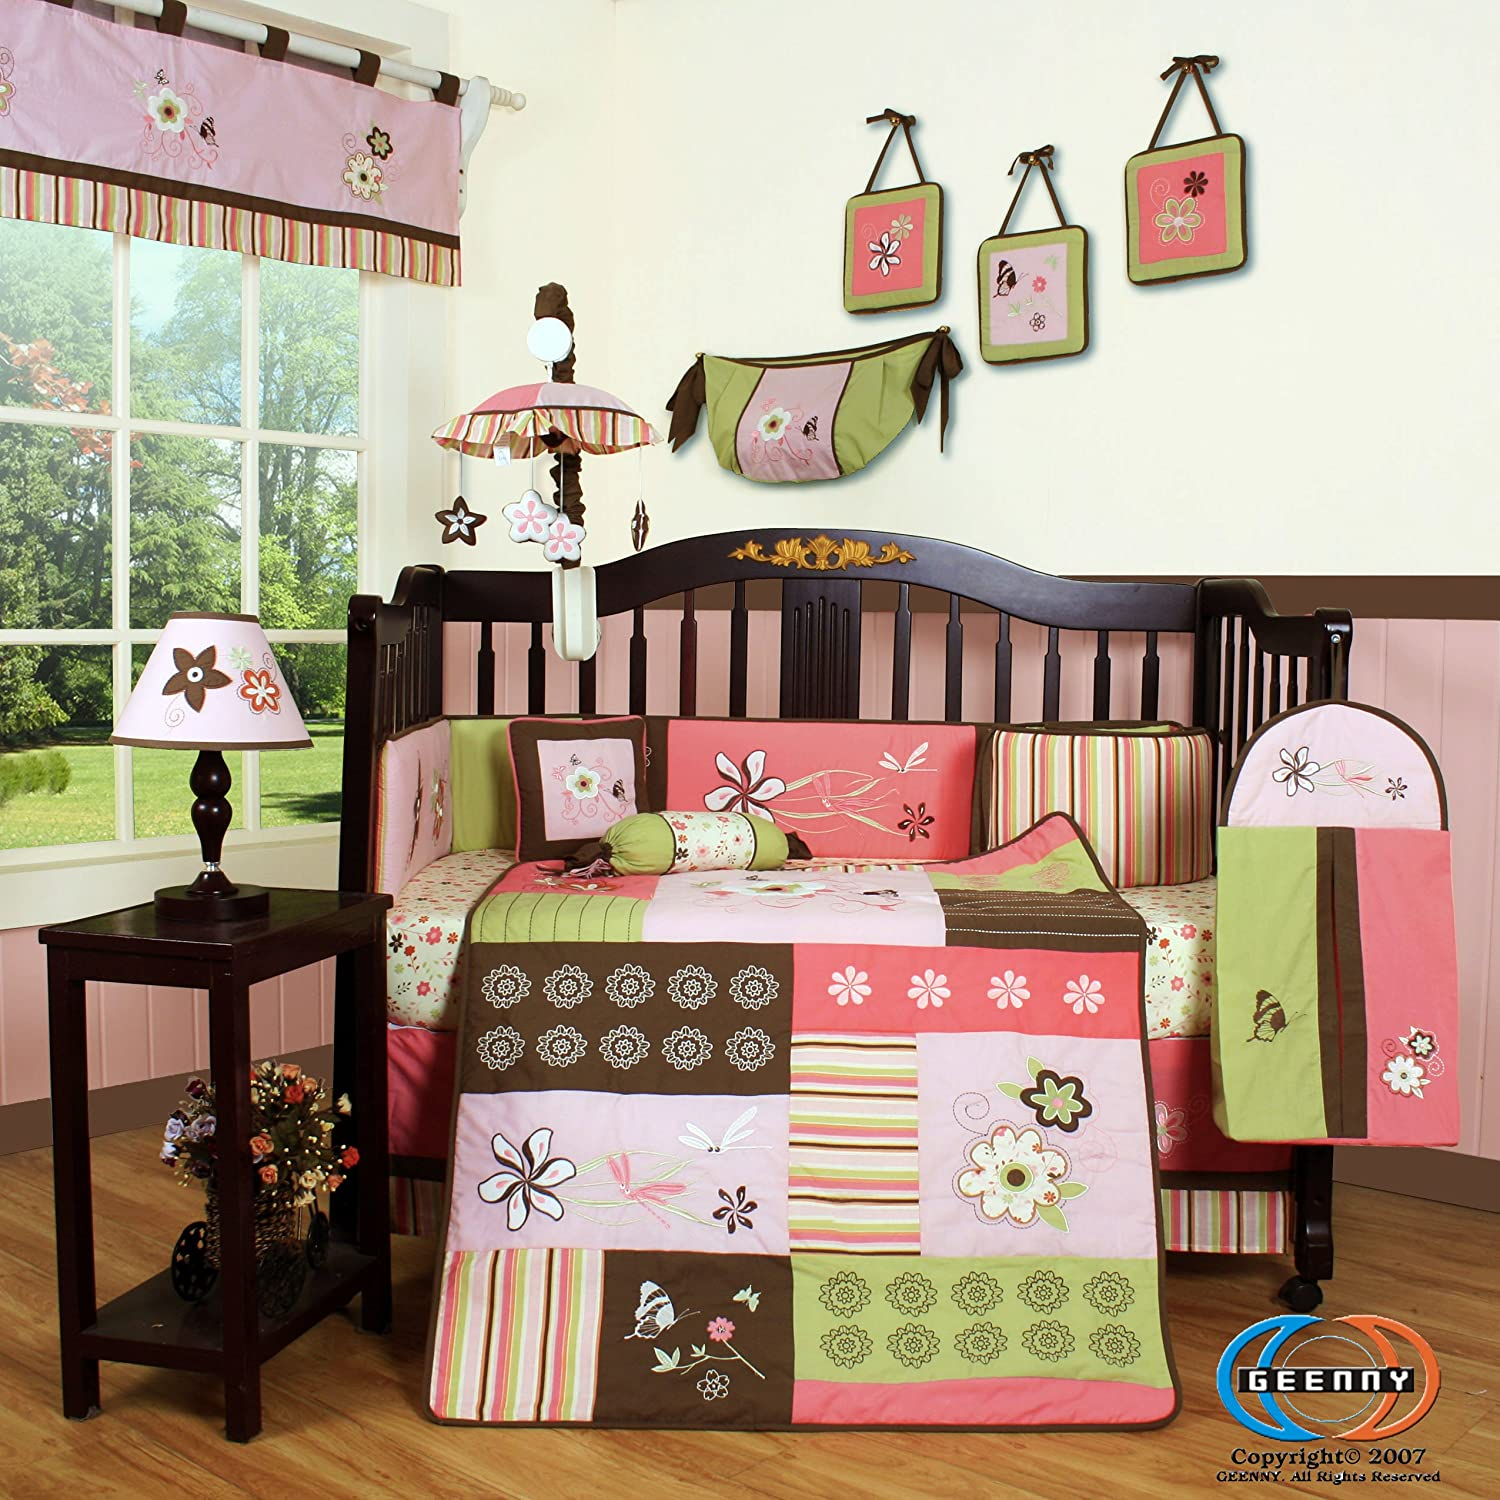 Boutique Floral Dream Crib Bedding